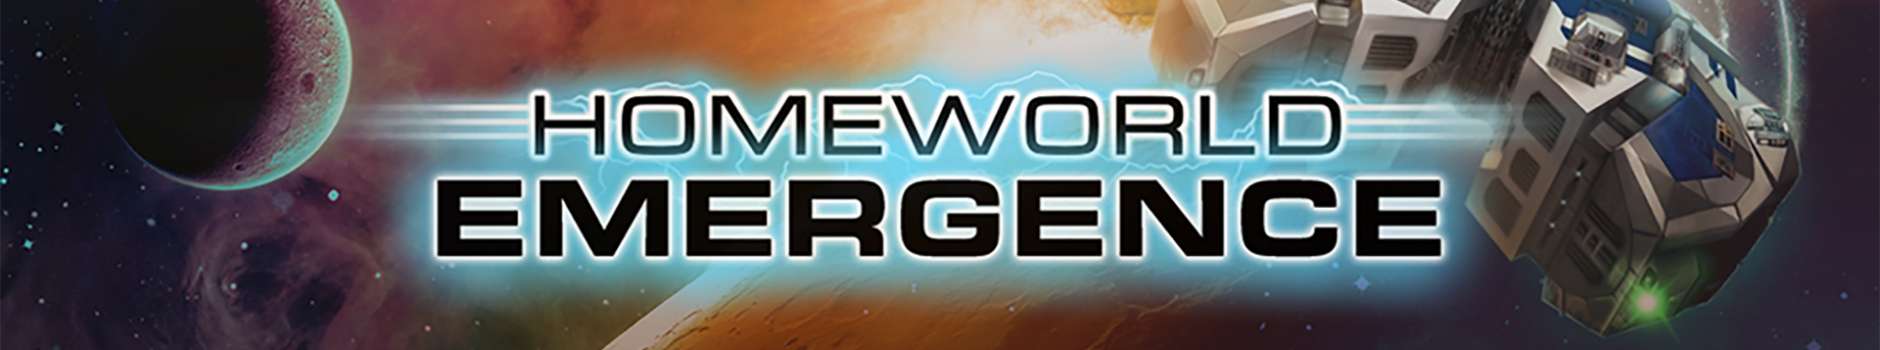 Homeworld Emergence Arrives Today Exclusively on GOG.com